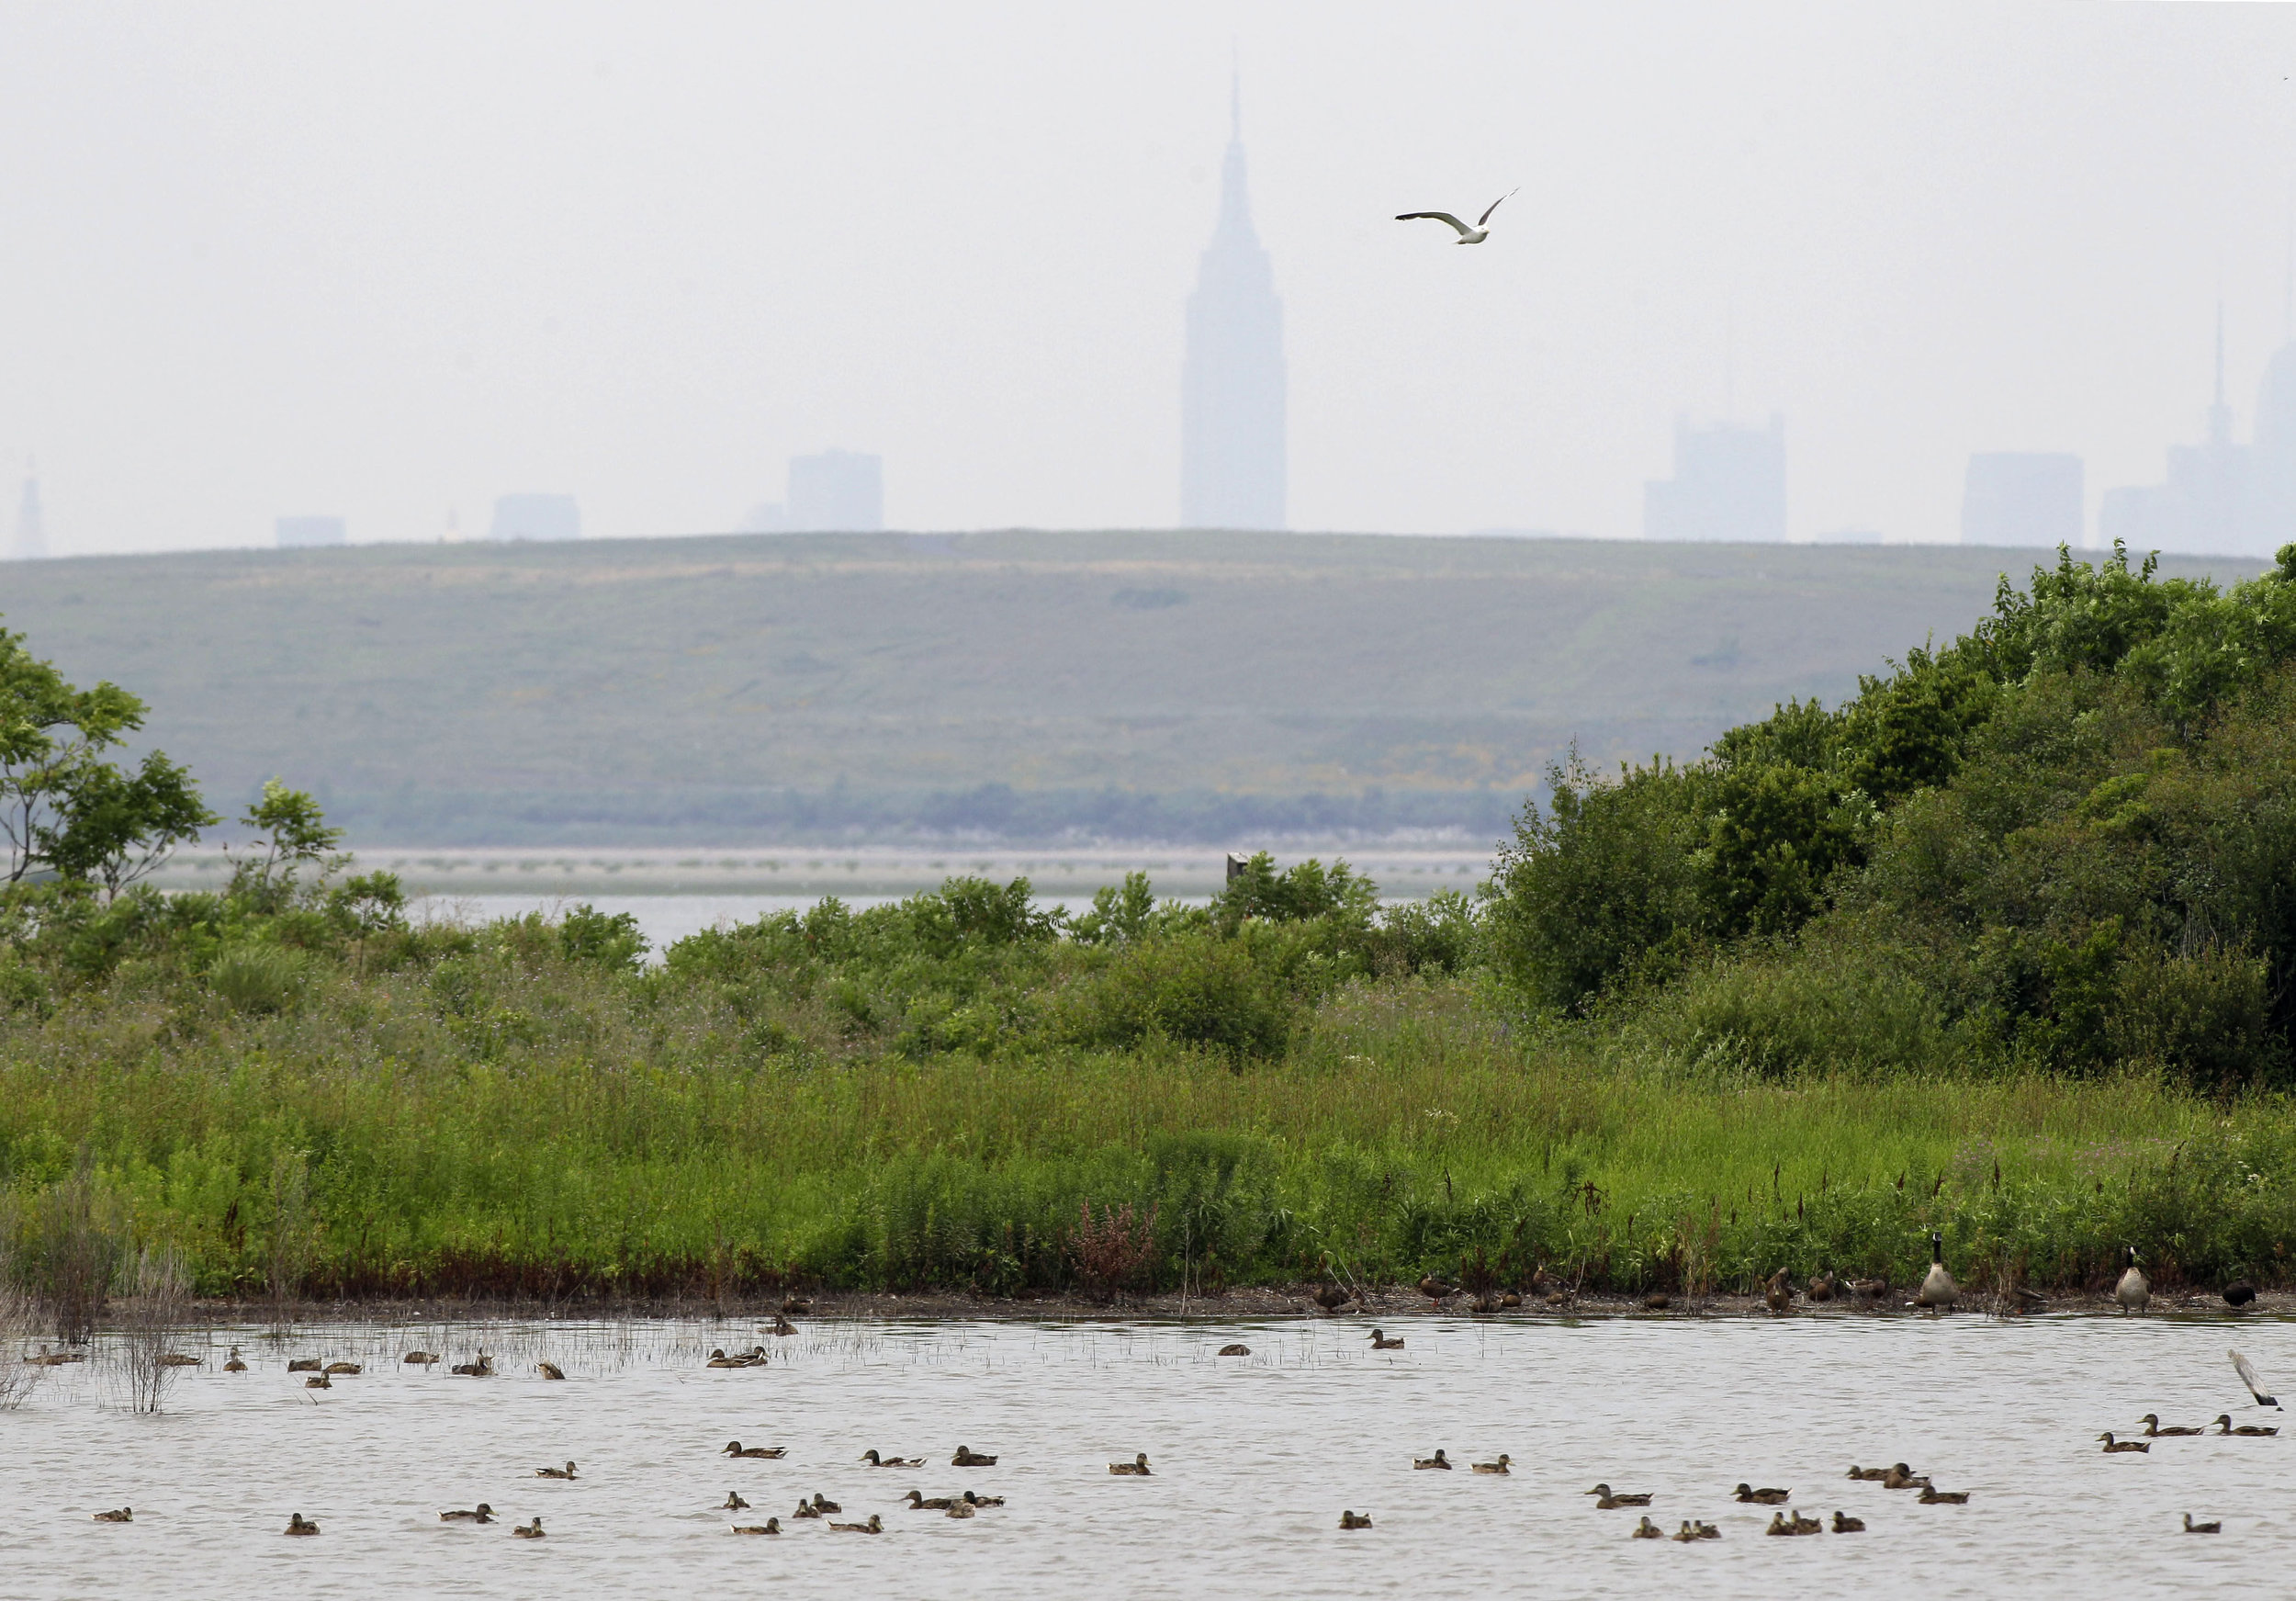 The West Pond at the Jamaica Bay Wildlife Refuge, part of the National Park Service. AP photo.